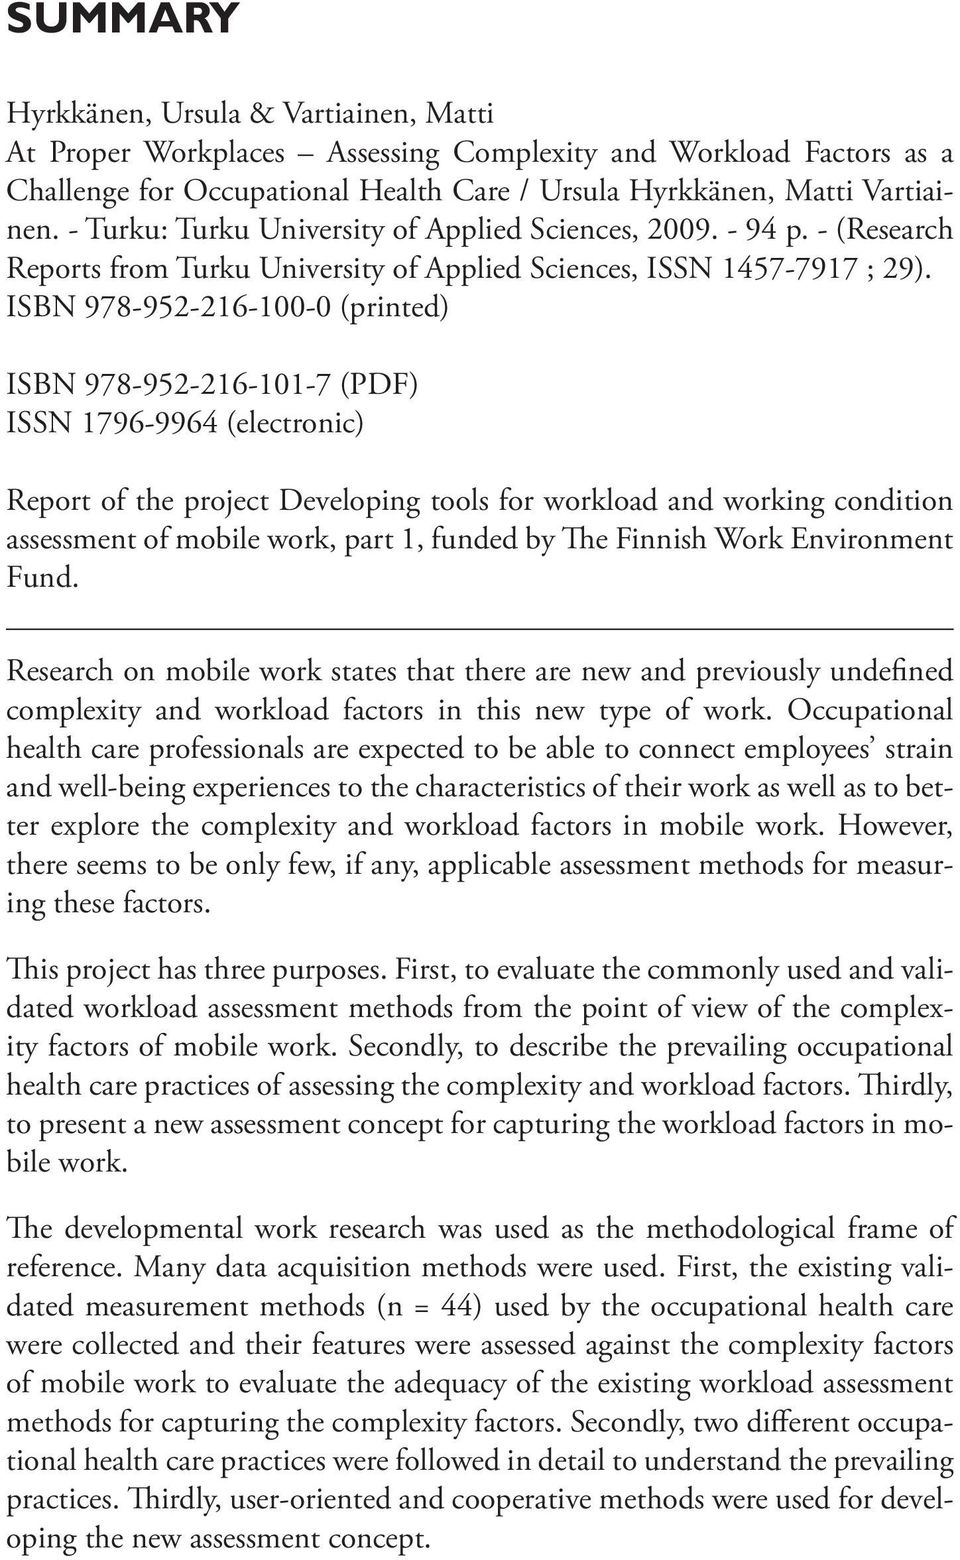 ISBN 978-952-216-100-0 (printed) ISBN 978-952-216-101-7 (PDF) ISSN 1796-9964 (electronic) Report of the project Developing tools for workload and working condition assessment of mobile work, part 1,